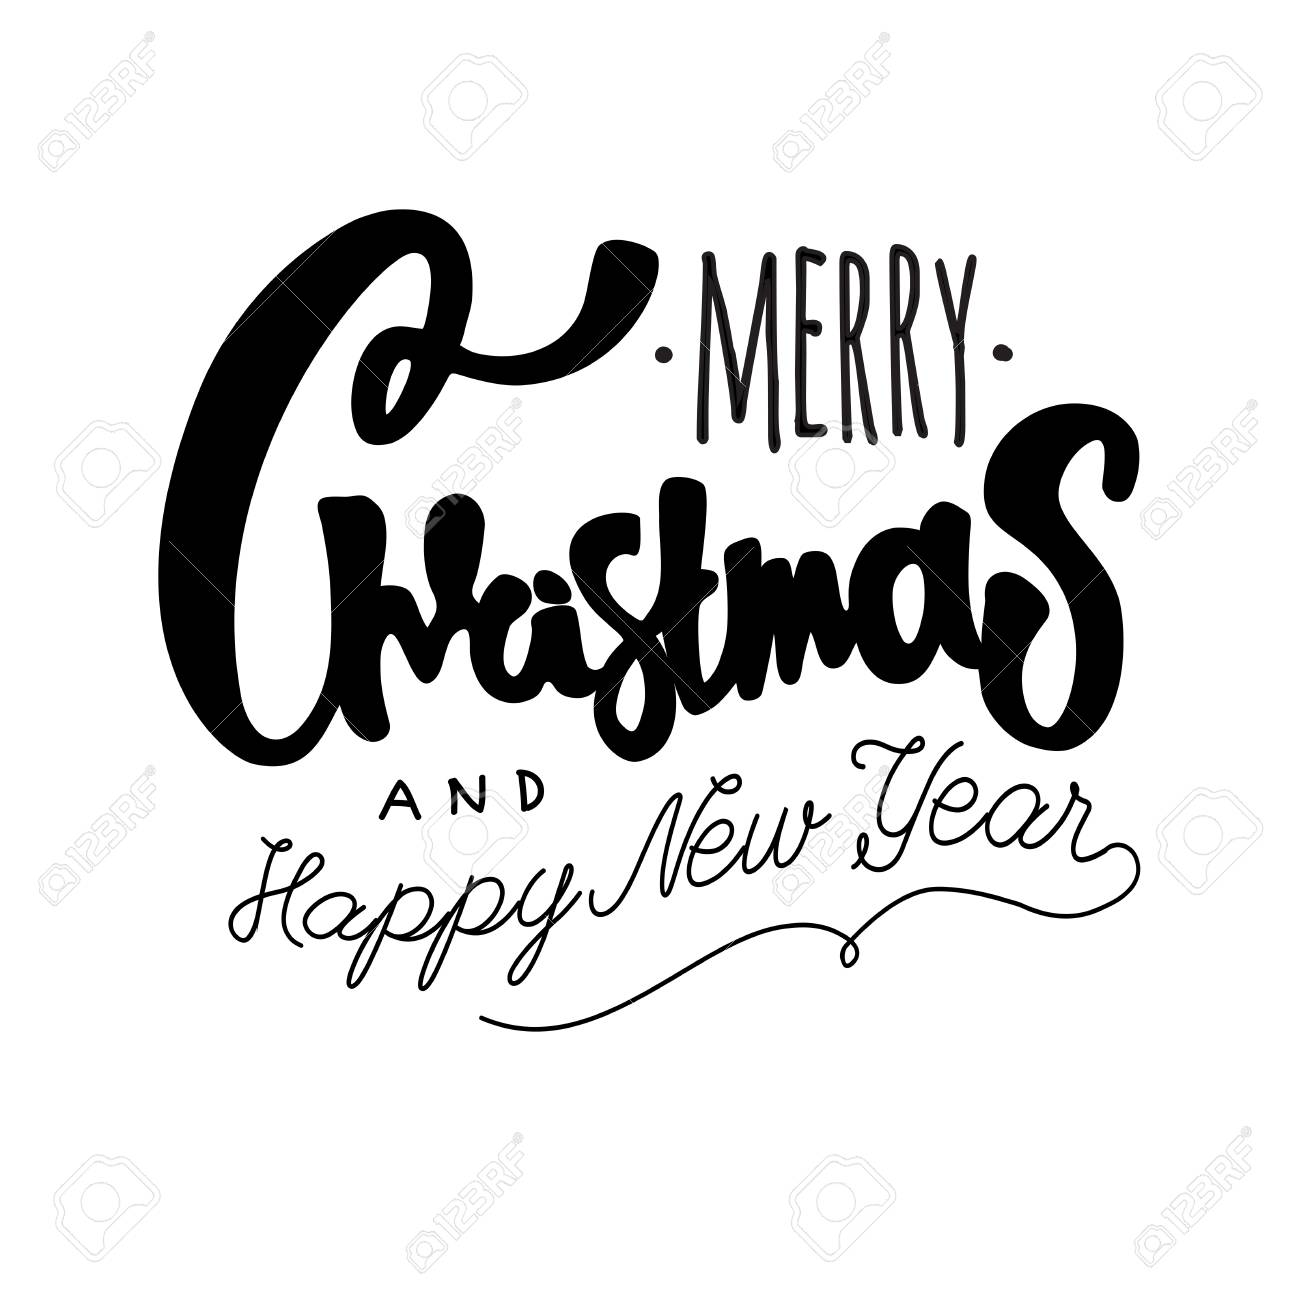 merry christmas and happy new year hand drawn retro design royalty free cliparts vectors and stock illustration image 68990994 merry christmas and happy new year hand drawn retro design